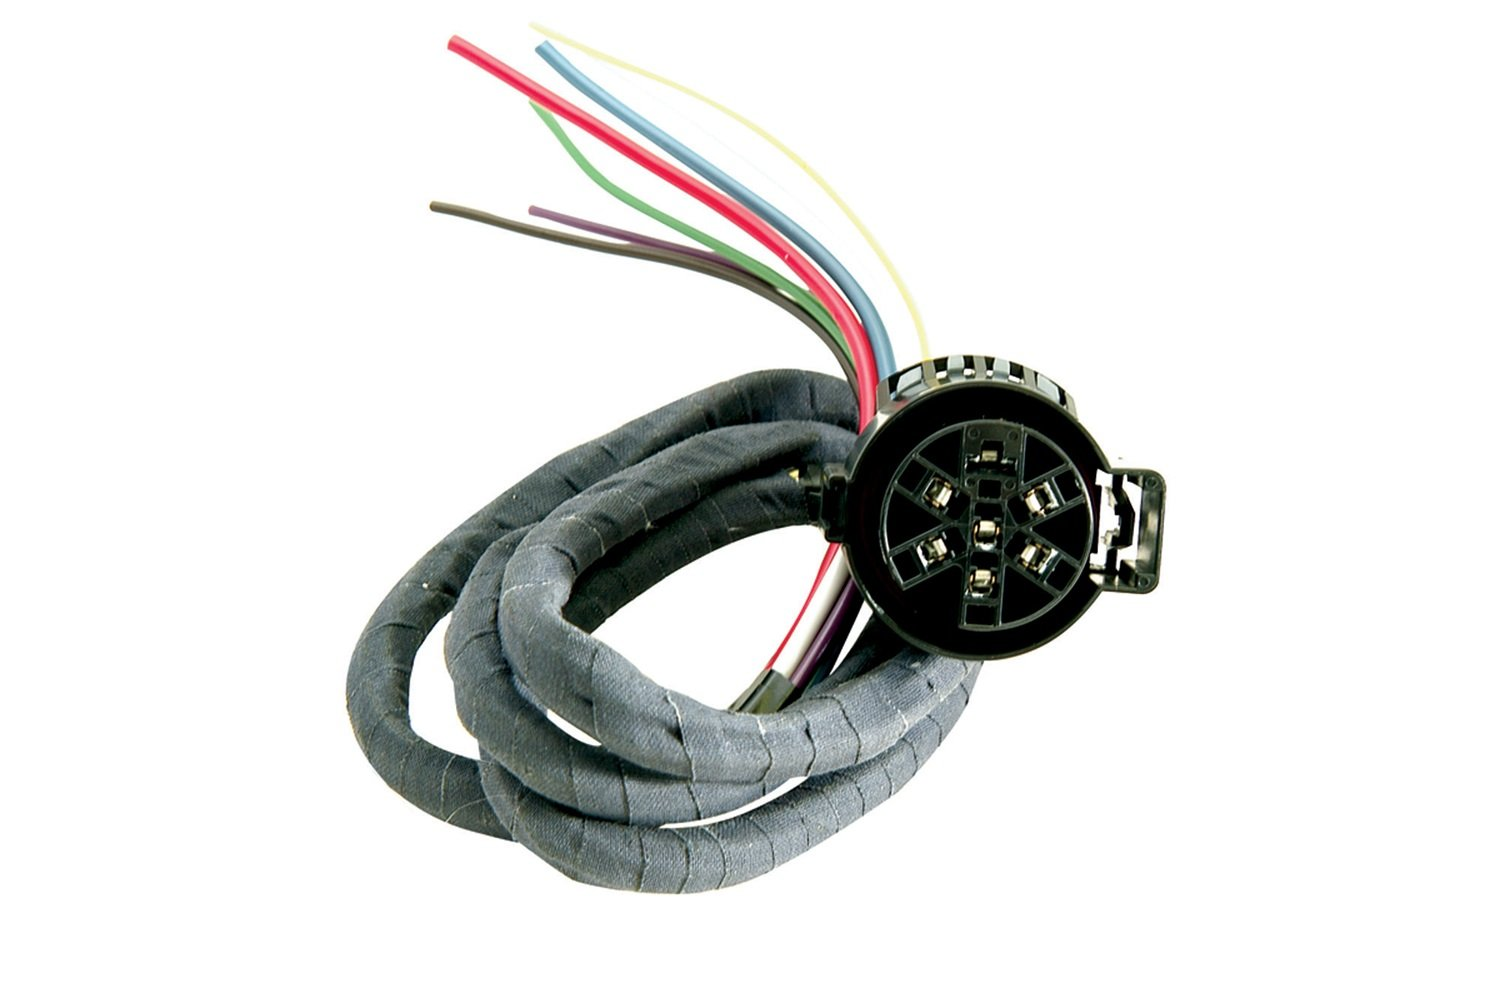 619JgDjQ1WL._SL1500_ amazon com hopkins 40985 universal multi tow harness connector universal wiring harness connector at bayanpartner.co